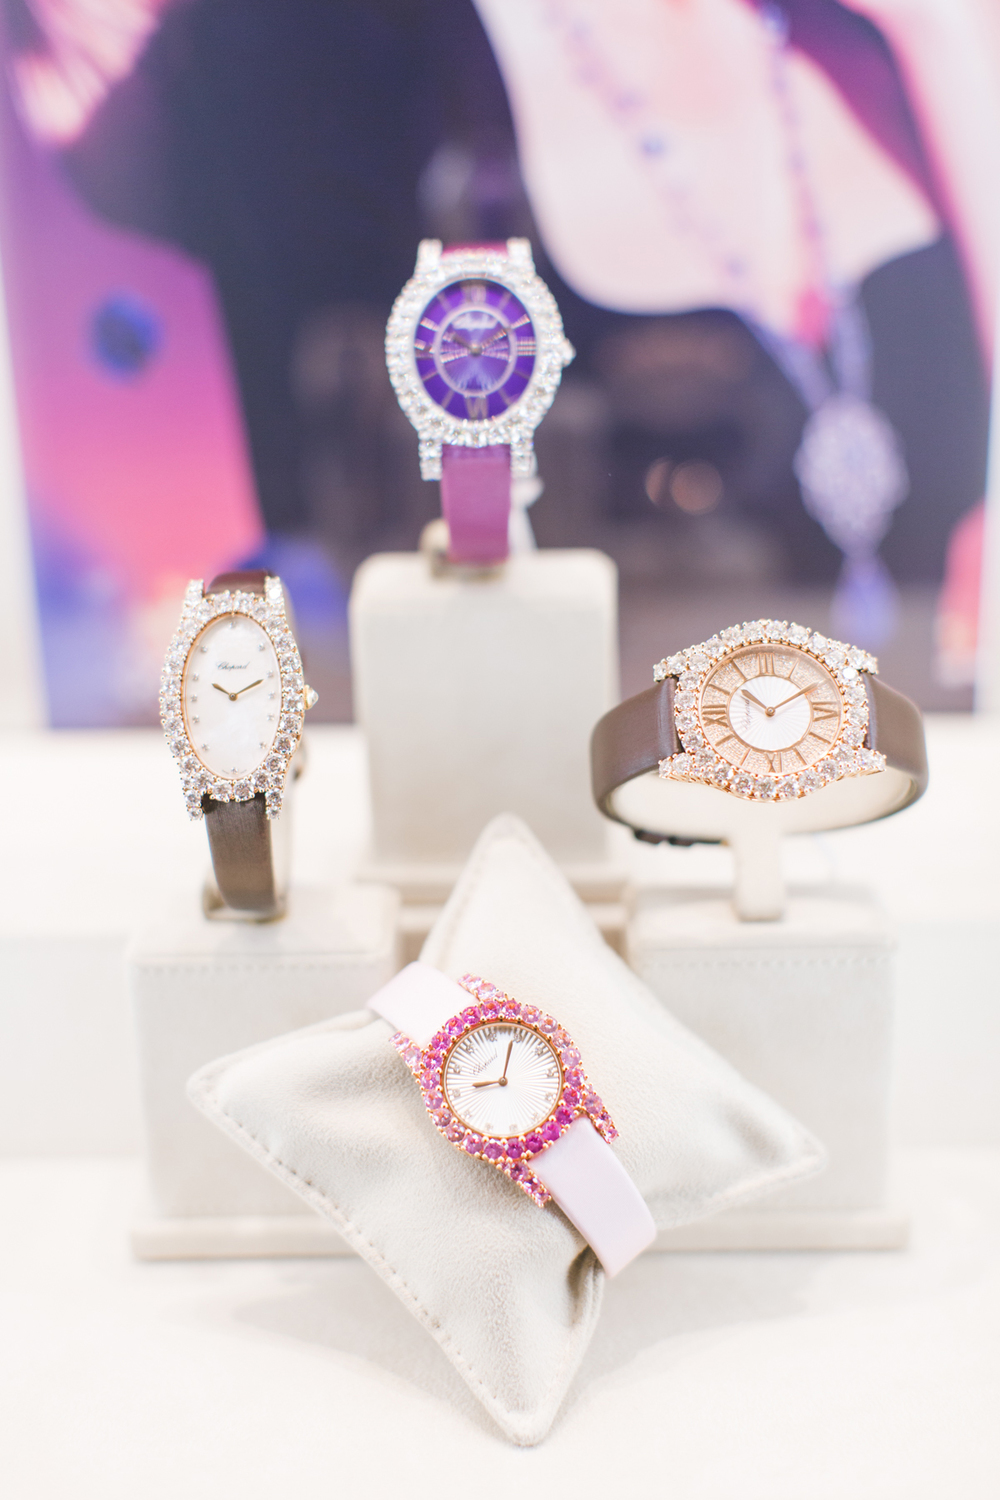 Chopard Selfridges London